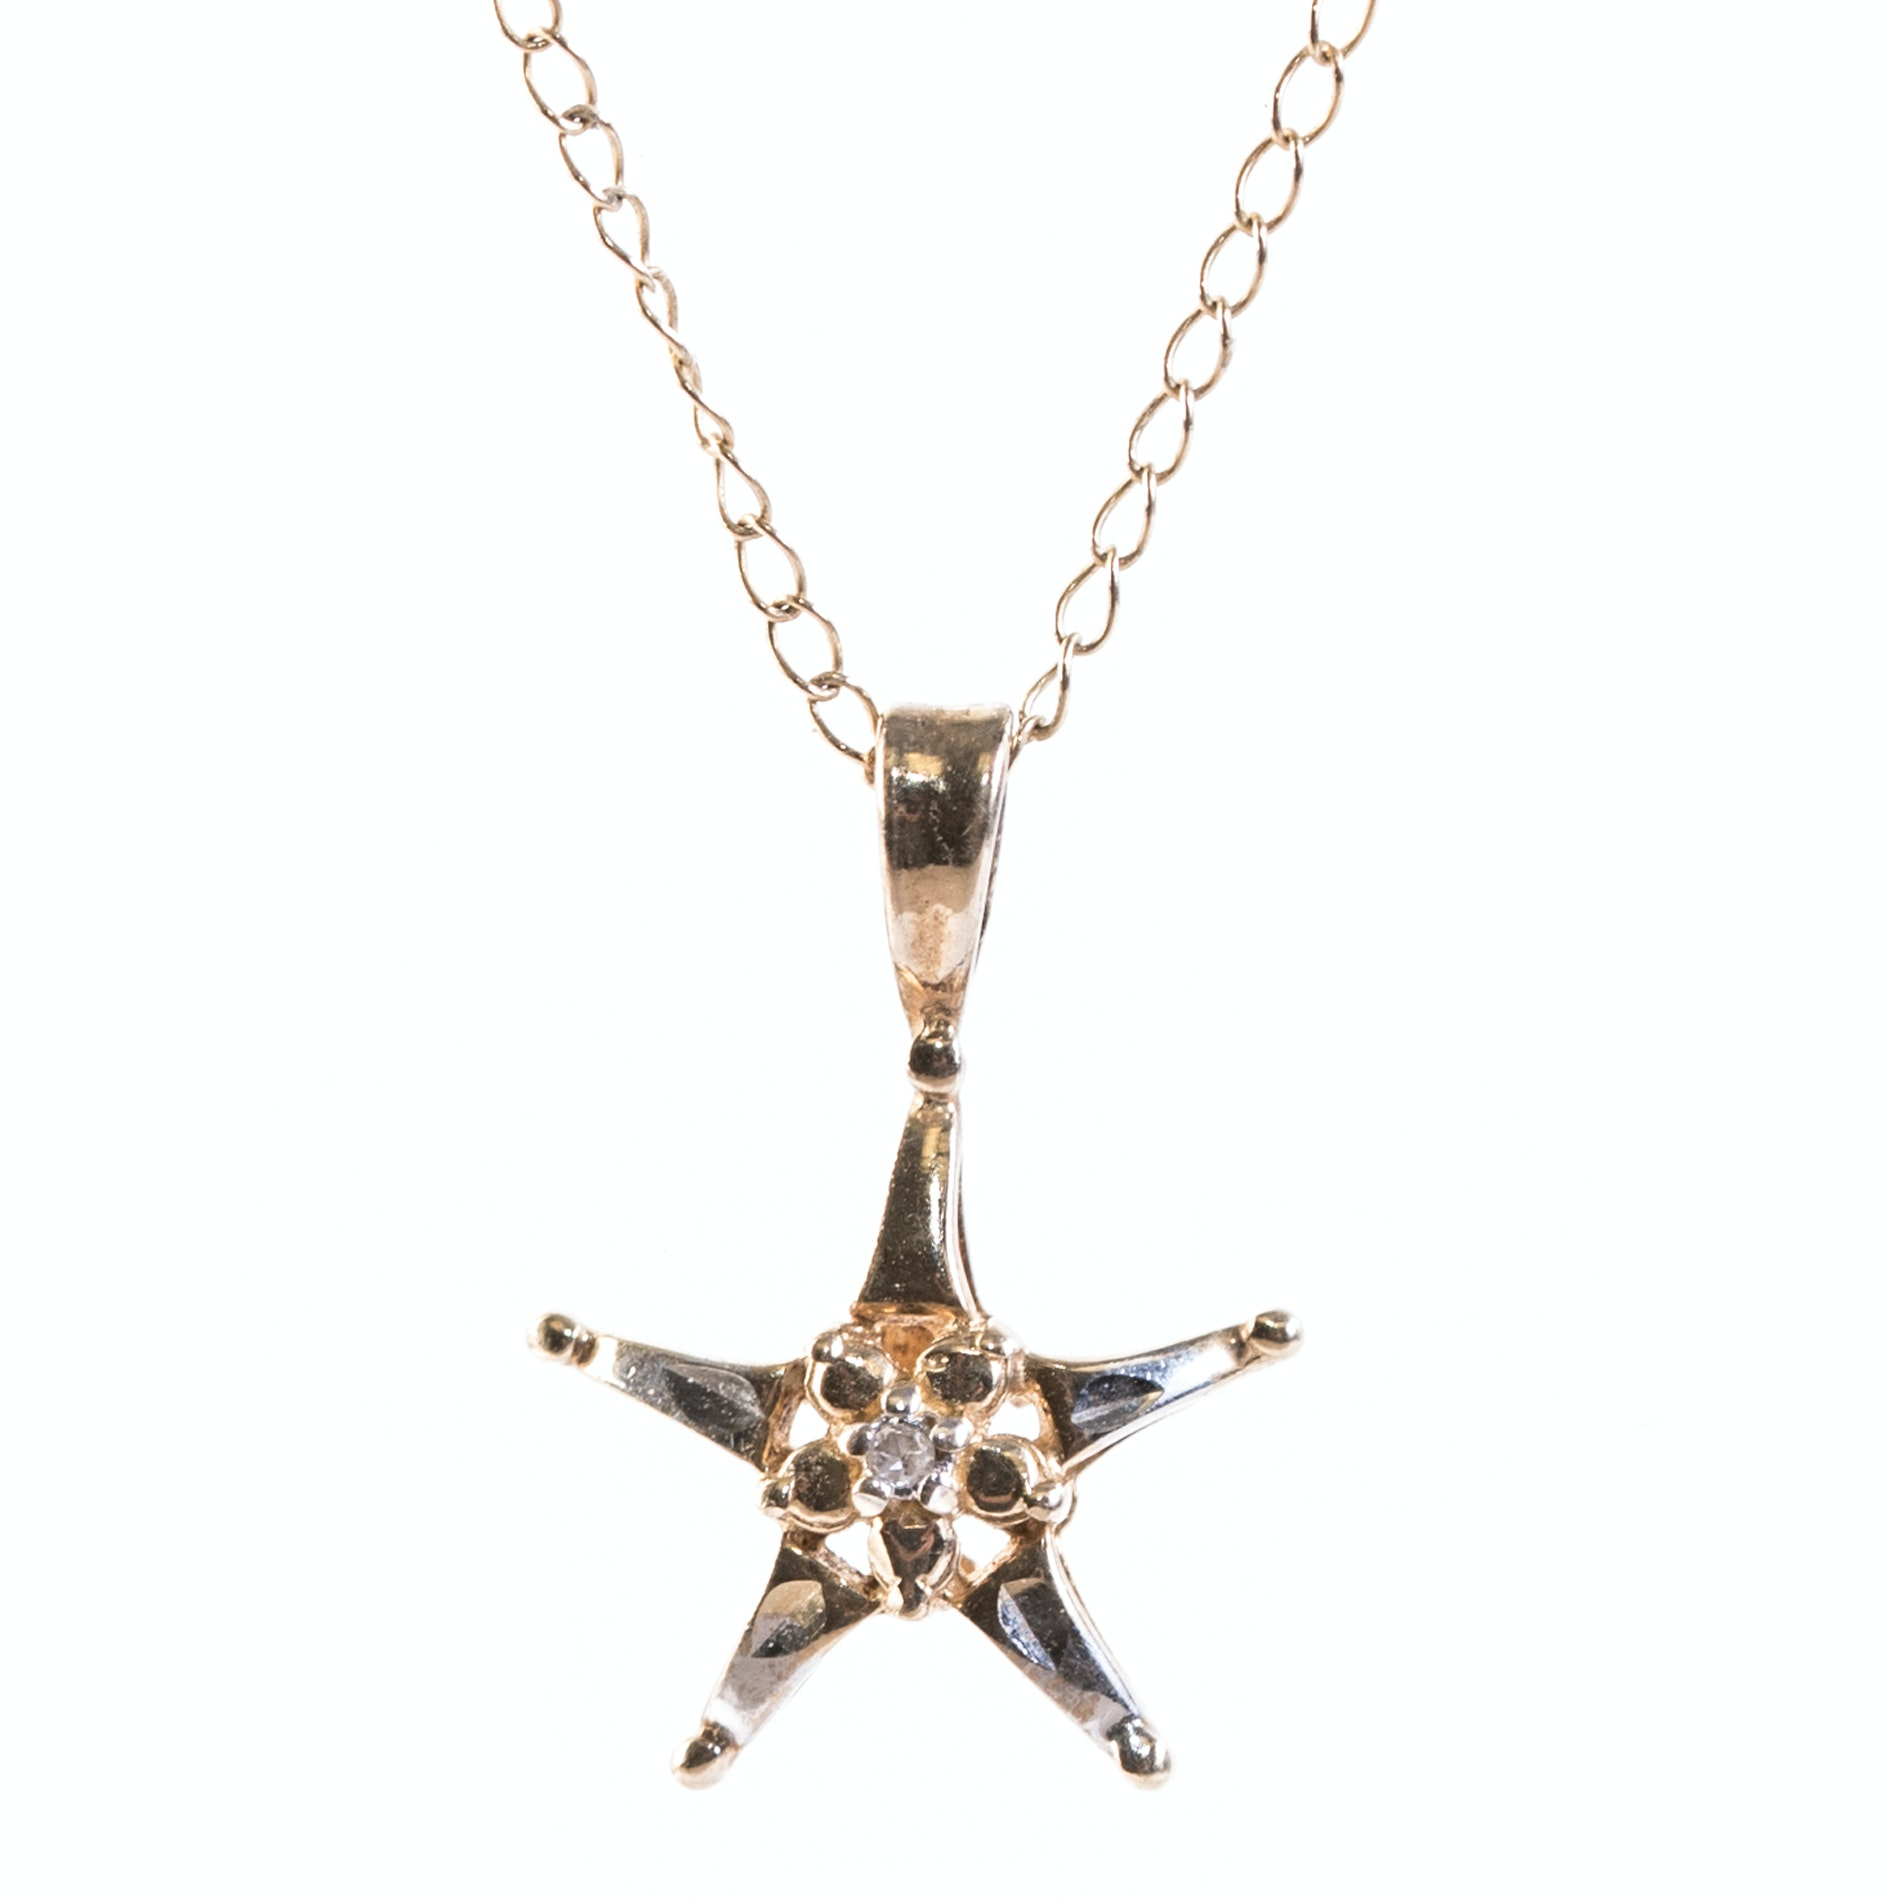 10K Yellow Gold Star Pendant Necklace